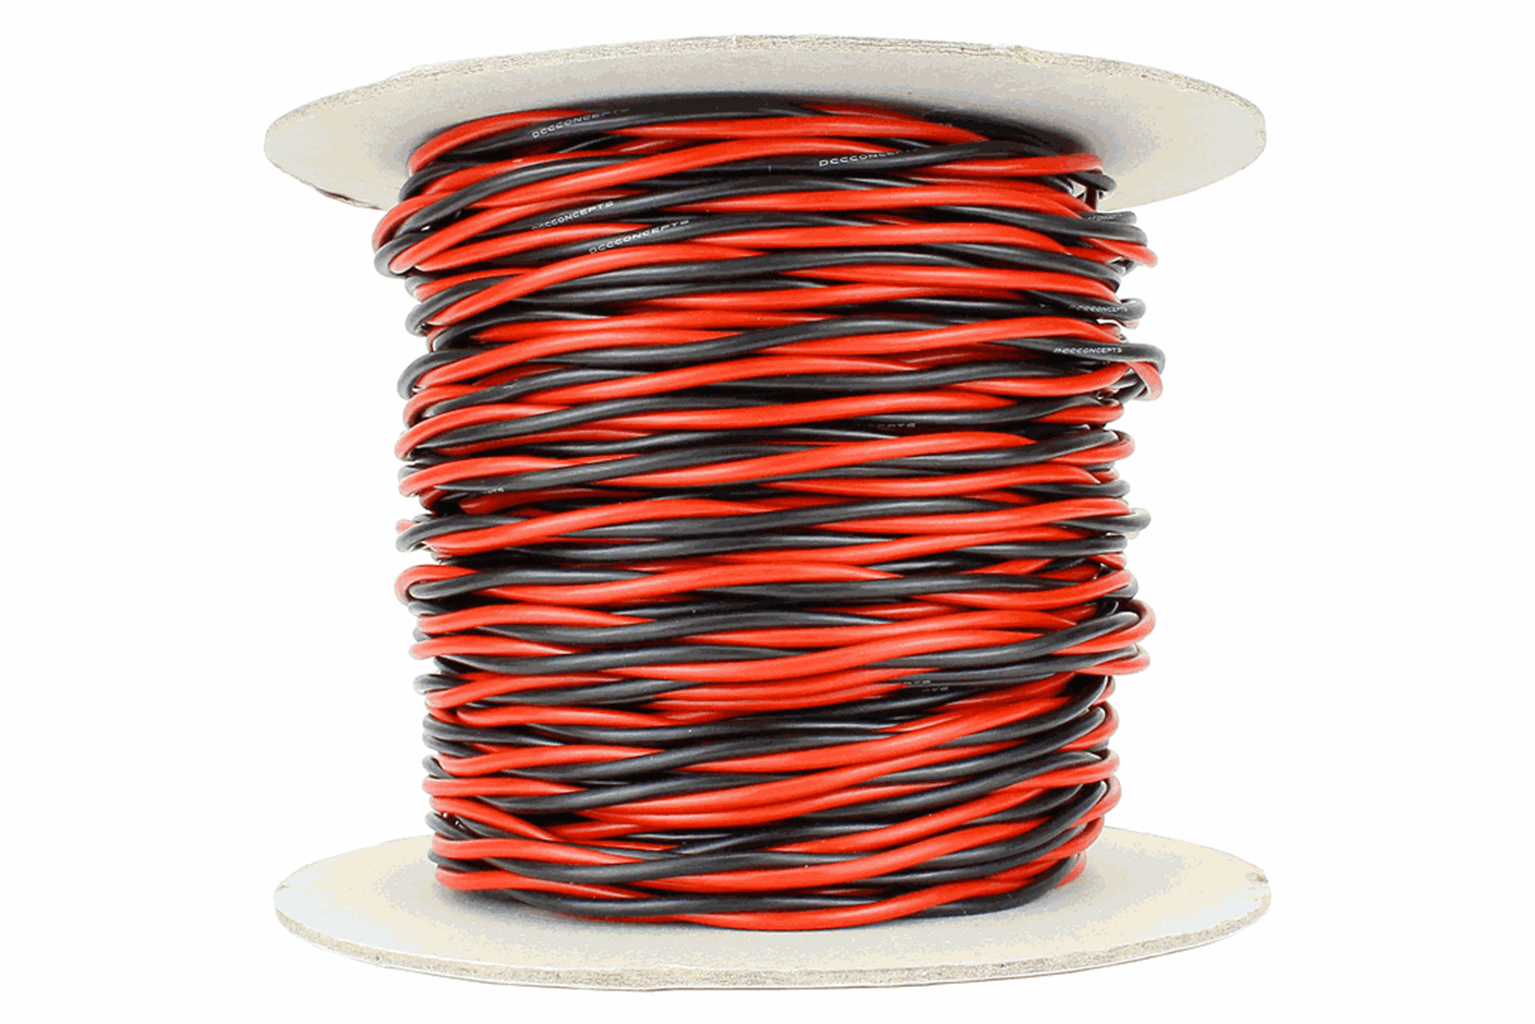 Twisted Bus Wire 50m of 2.5mm (13g) Twin Red/Black